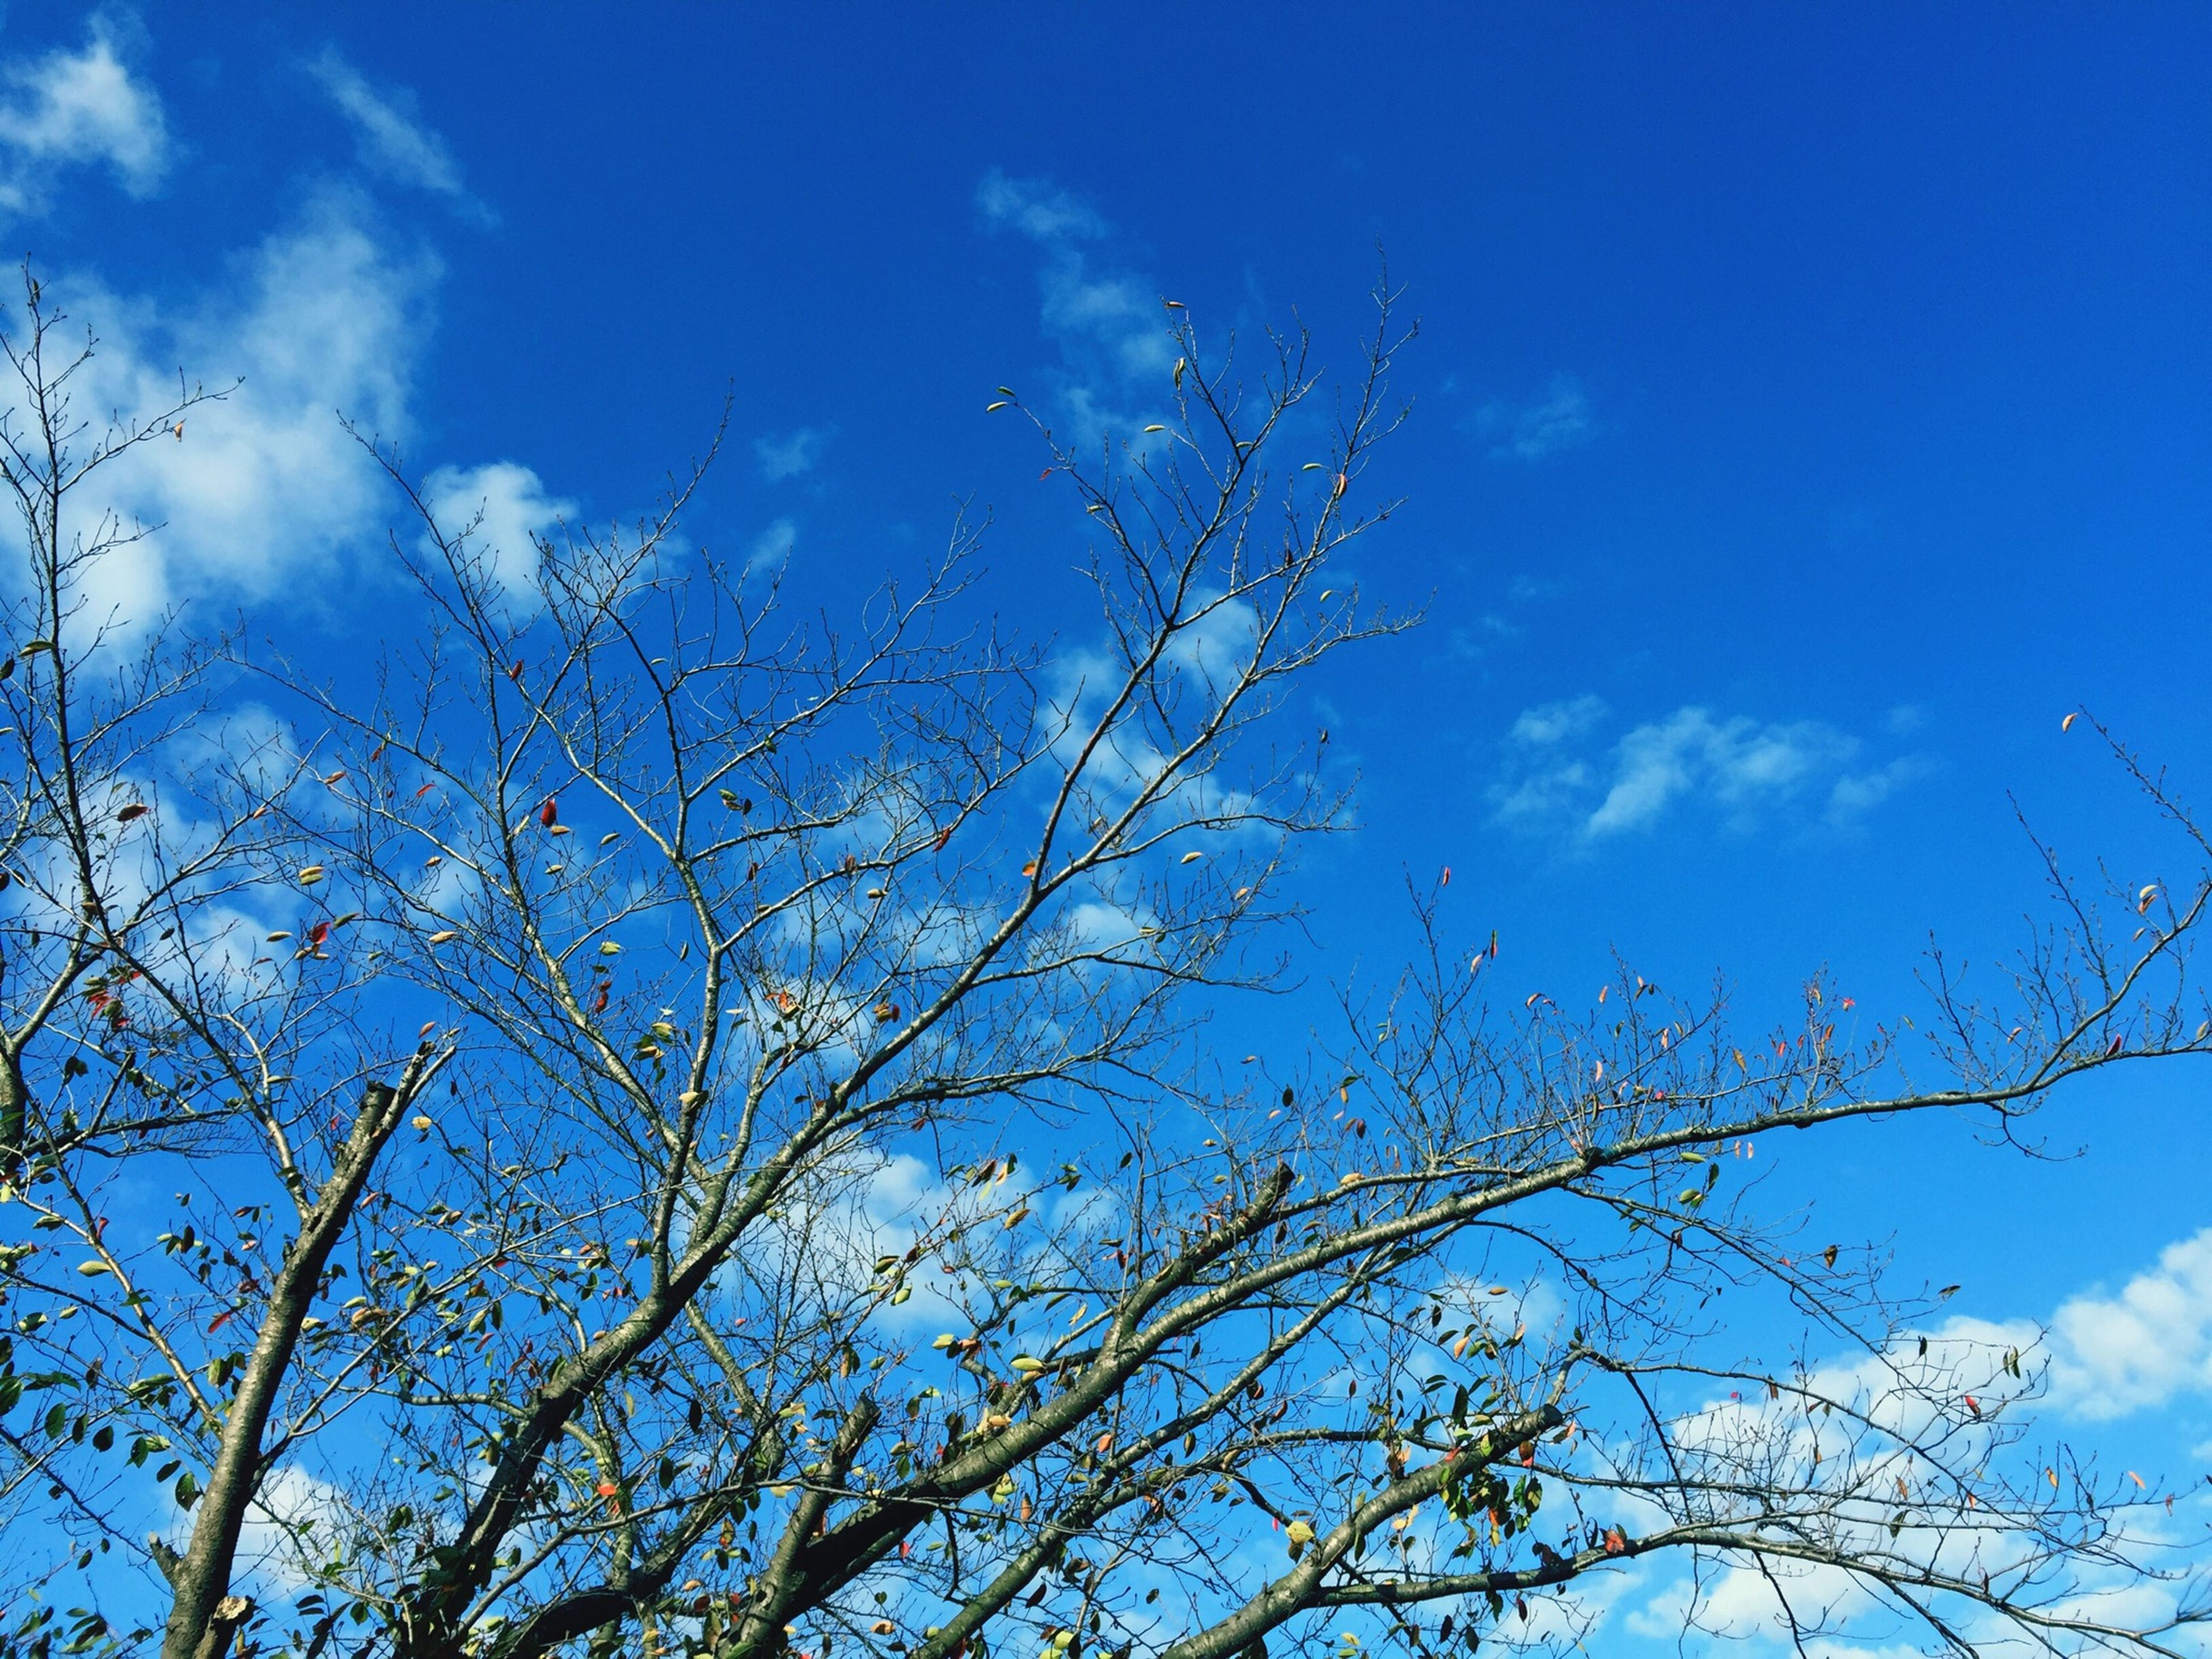 low angle view, sky, blue, branch, tree, bare tree, cloud - sky, nature, beauty in nature, tranquility, cloud, outdoors, day, scenics, growth, no people, high section, cloudy, tranquil scene, sunlight